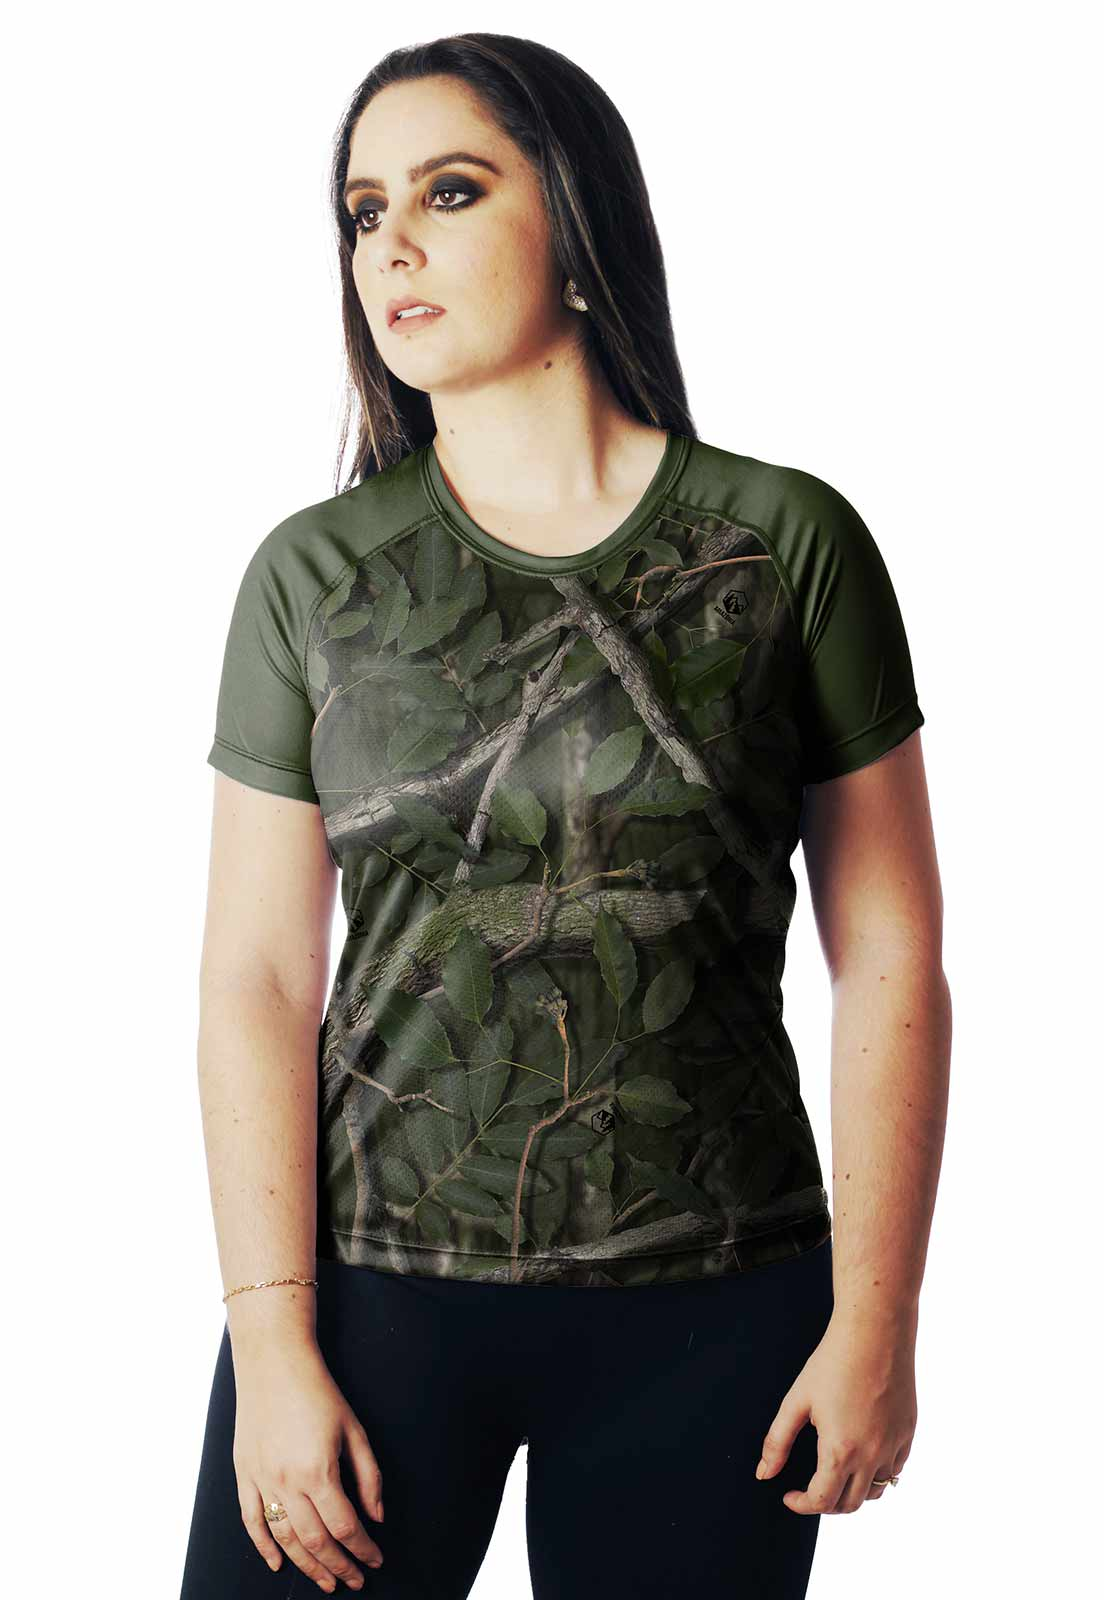 CAMISA DE PESCA CASUAL DIA PROTEÇÃO UV AMAZÔNIA 01 REAL HUNTER FEMININA  - REAL HUNTER OUTDOORS